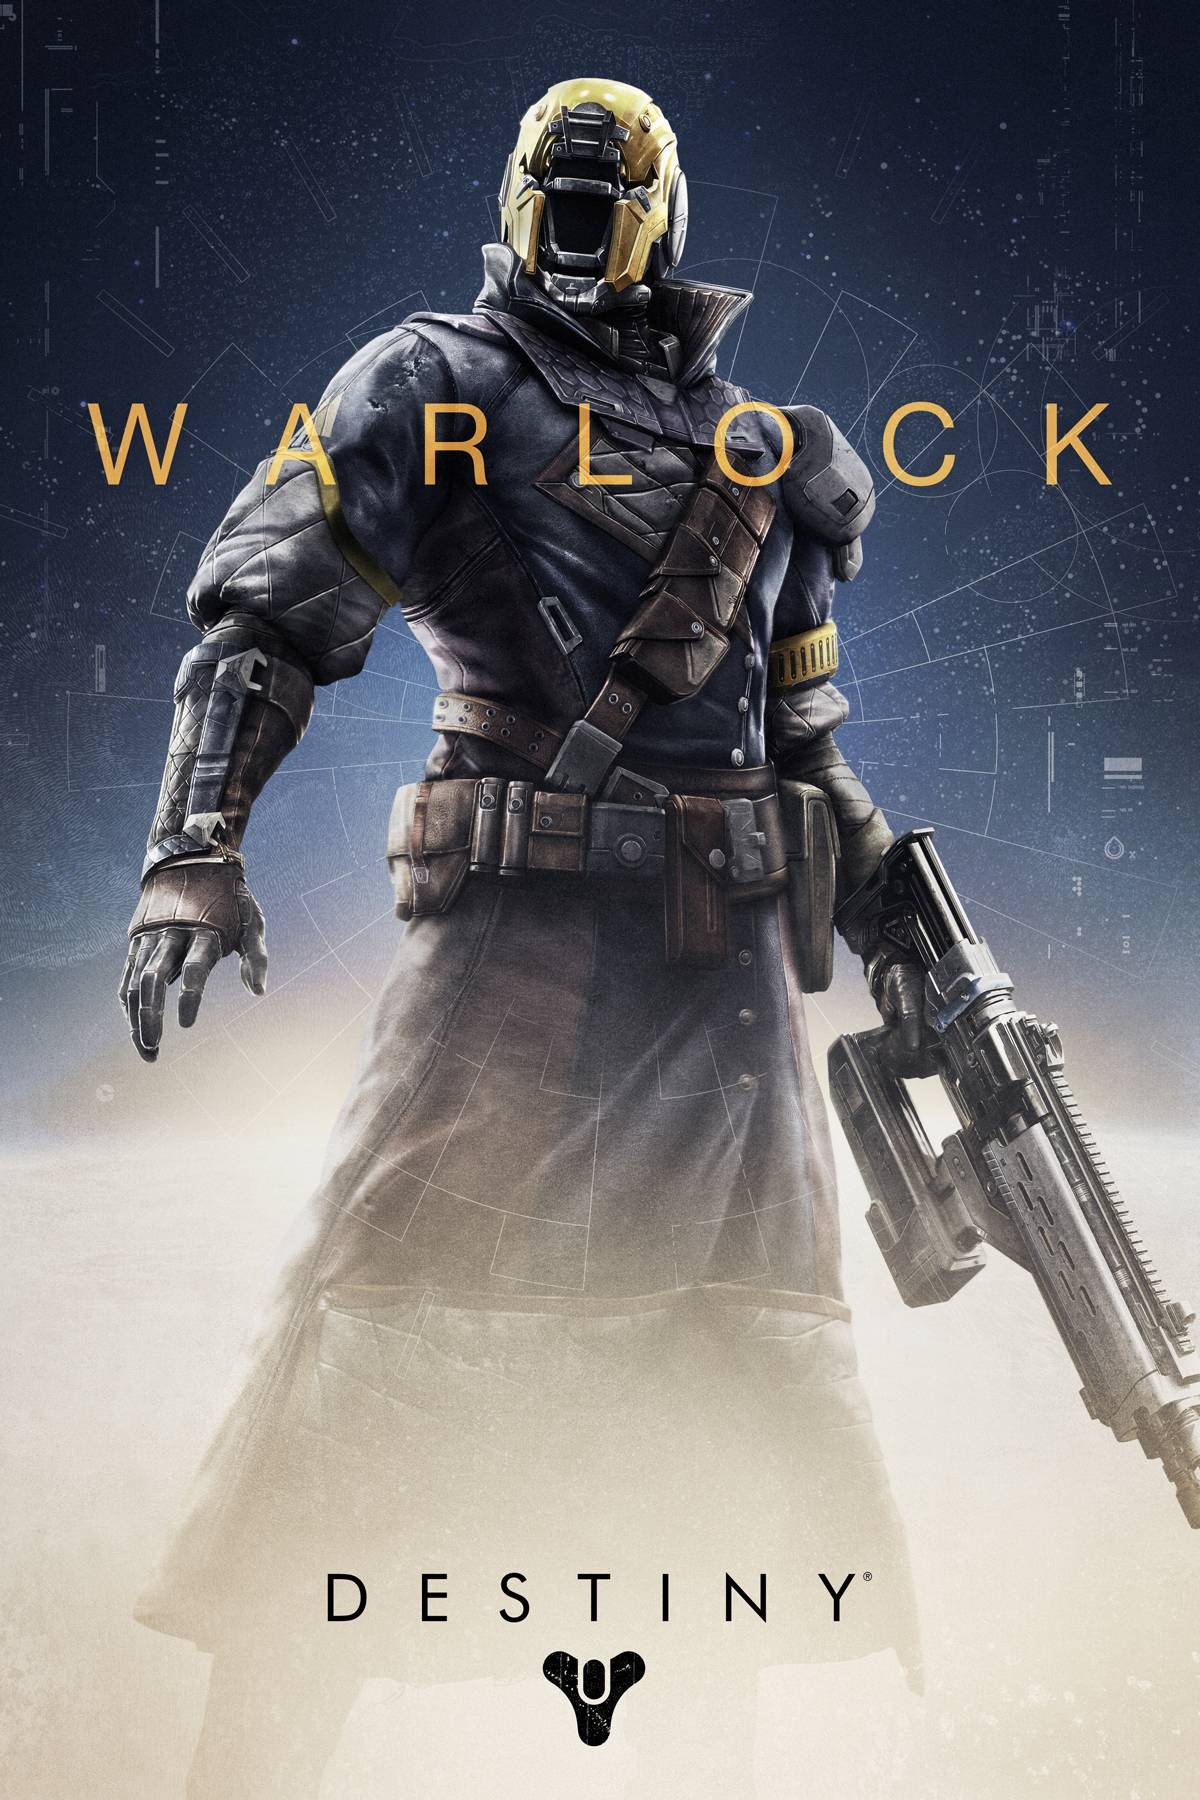 Awesome IPhoneandroid Destiny Wallpaper Warlock DestinyTheGame 1200x1800